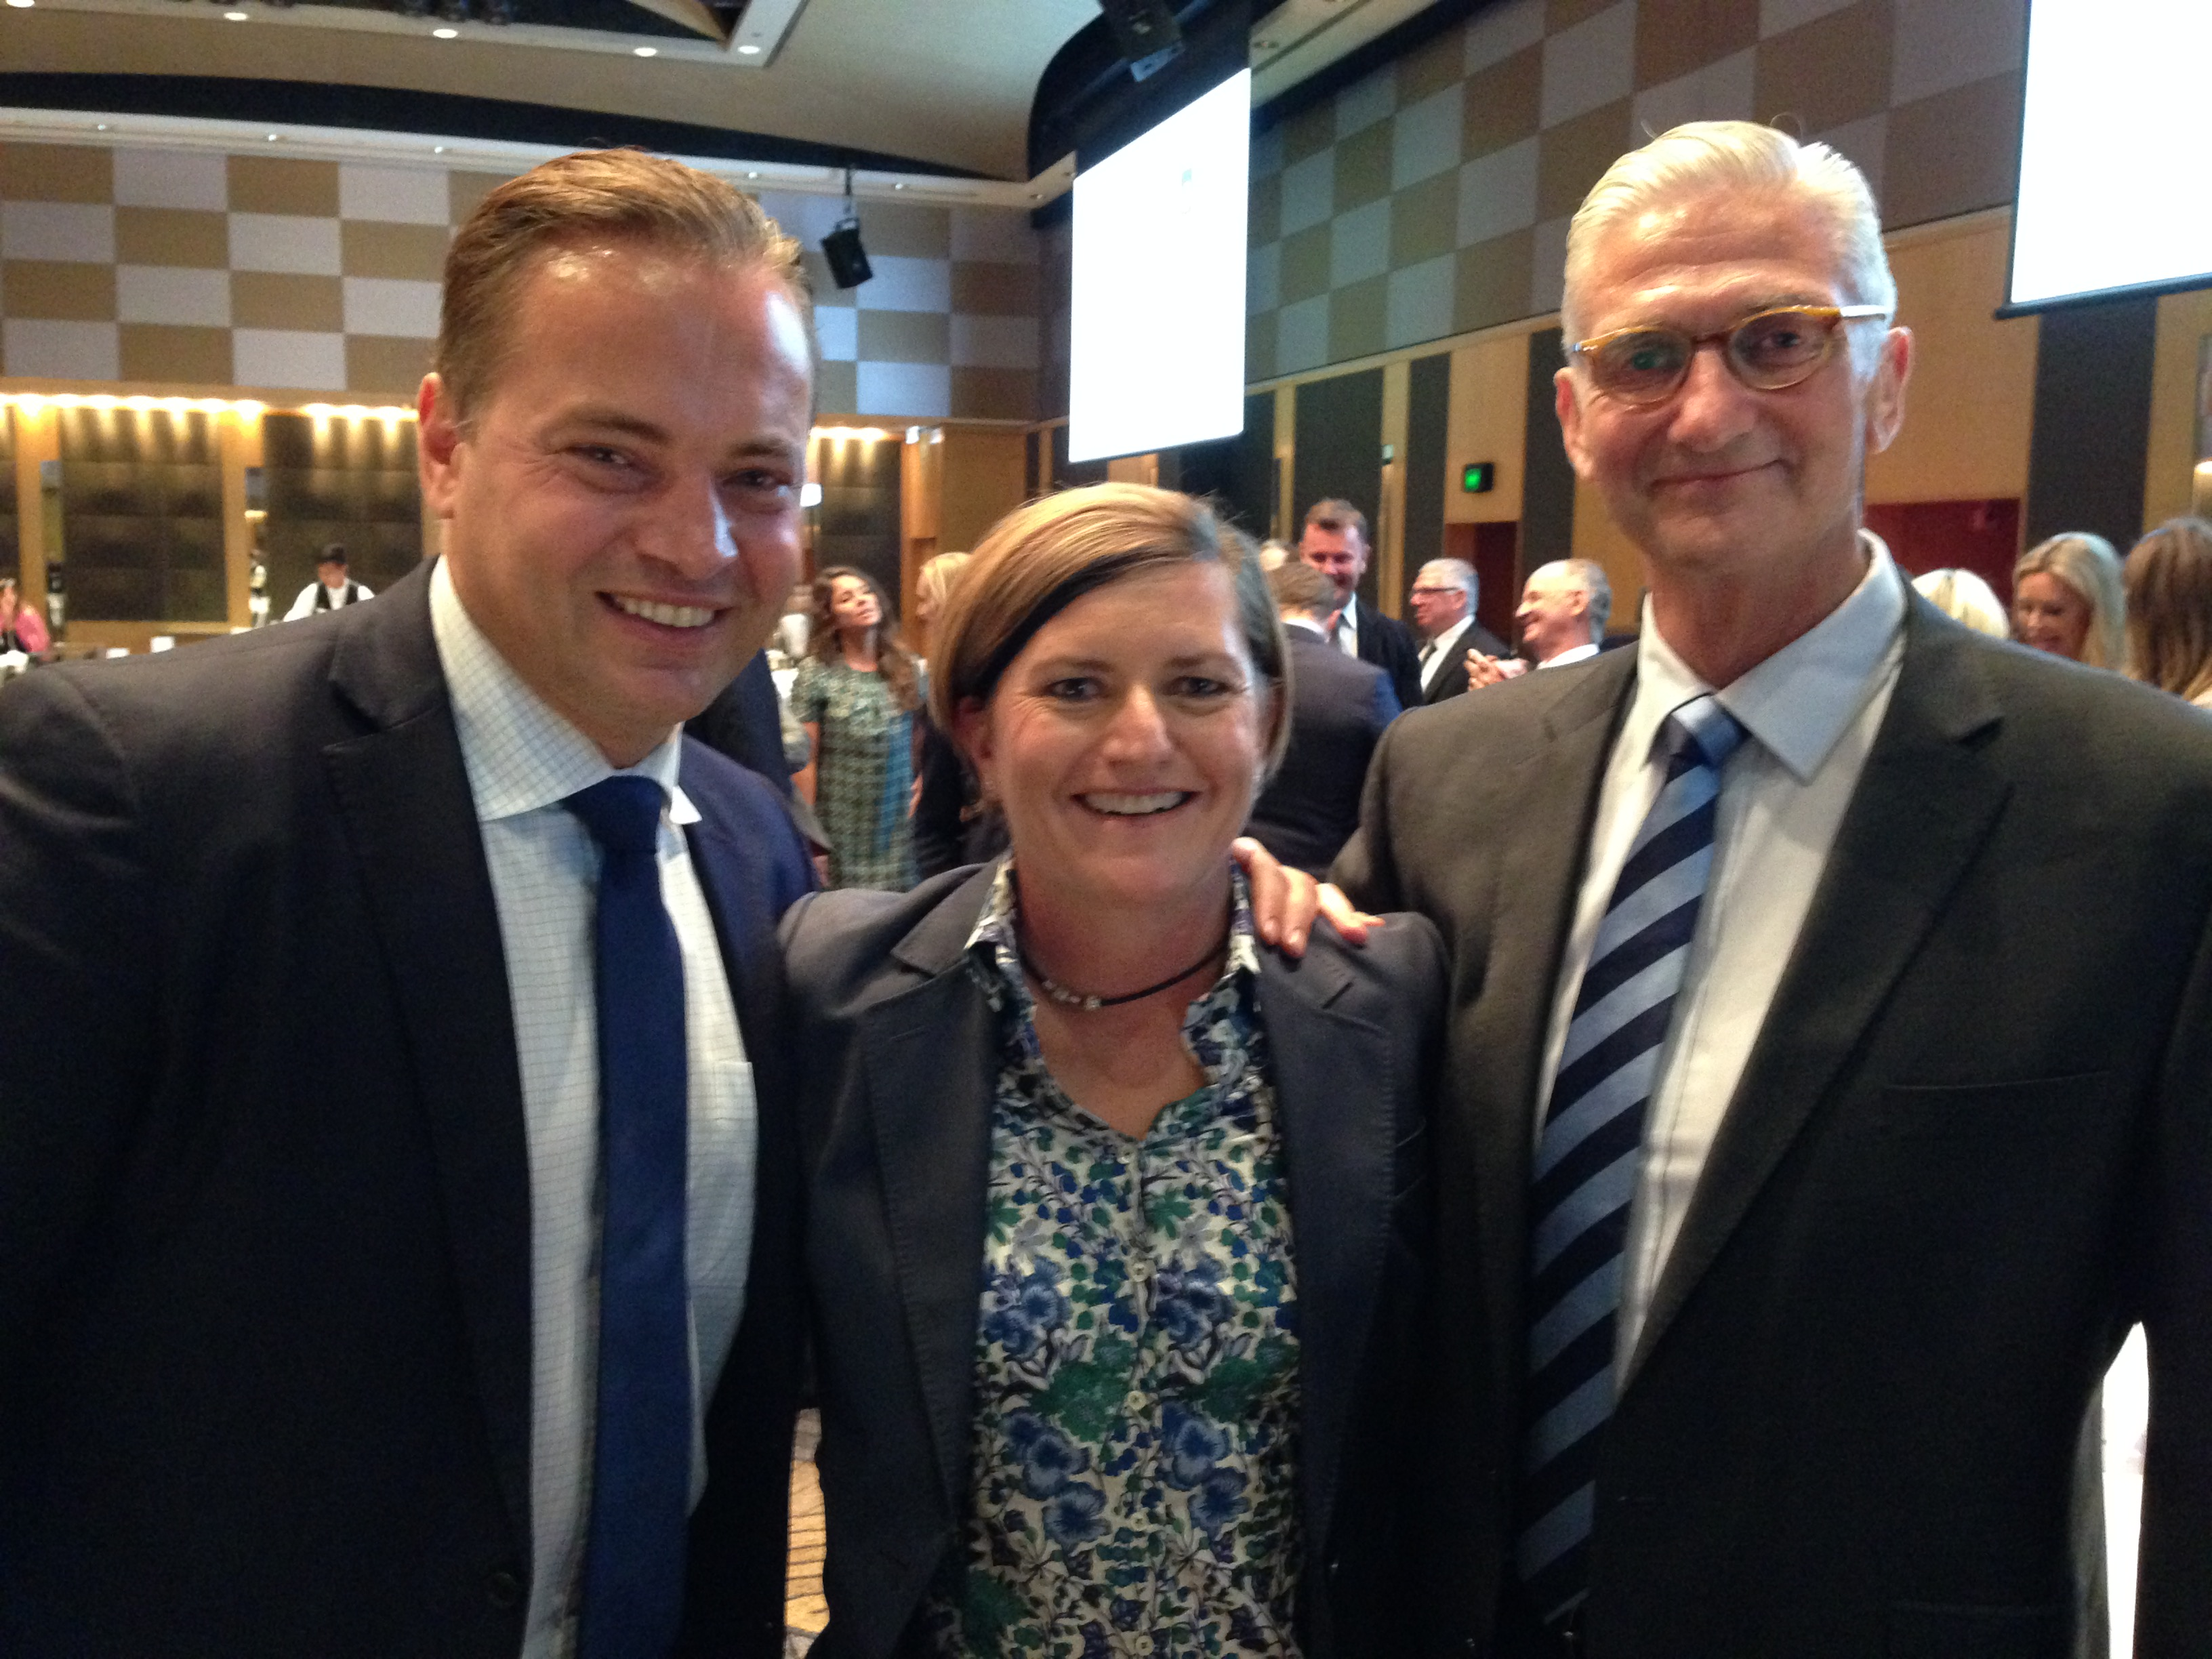 Christine Forster, Mark Bosnich & Mark Chester @ Sydney FC In Business Lunch 05-03-15